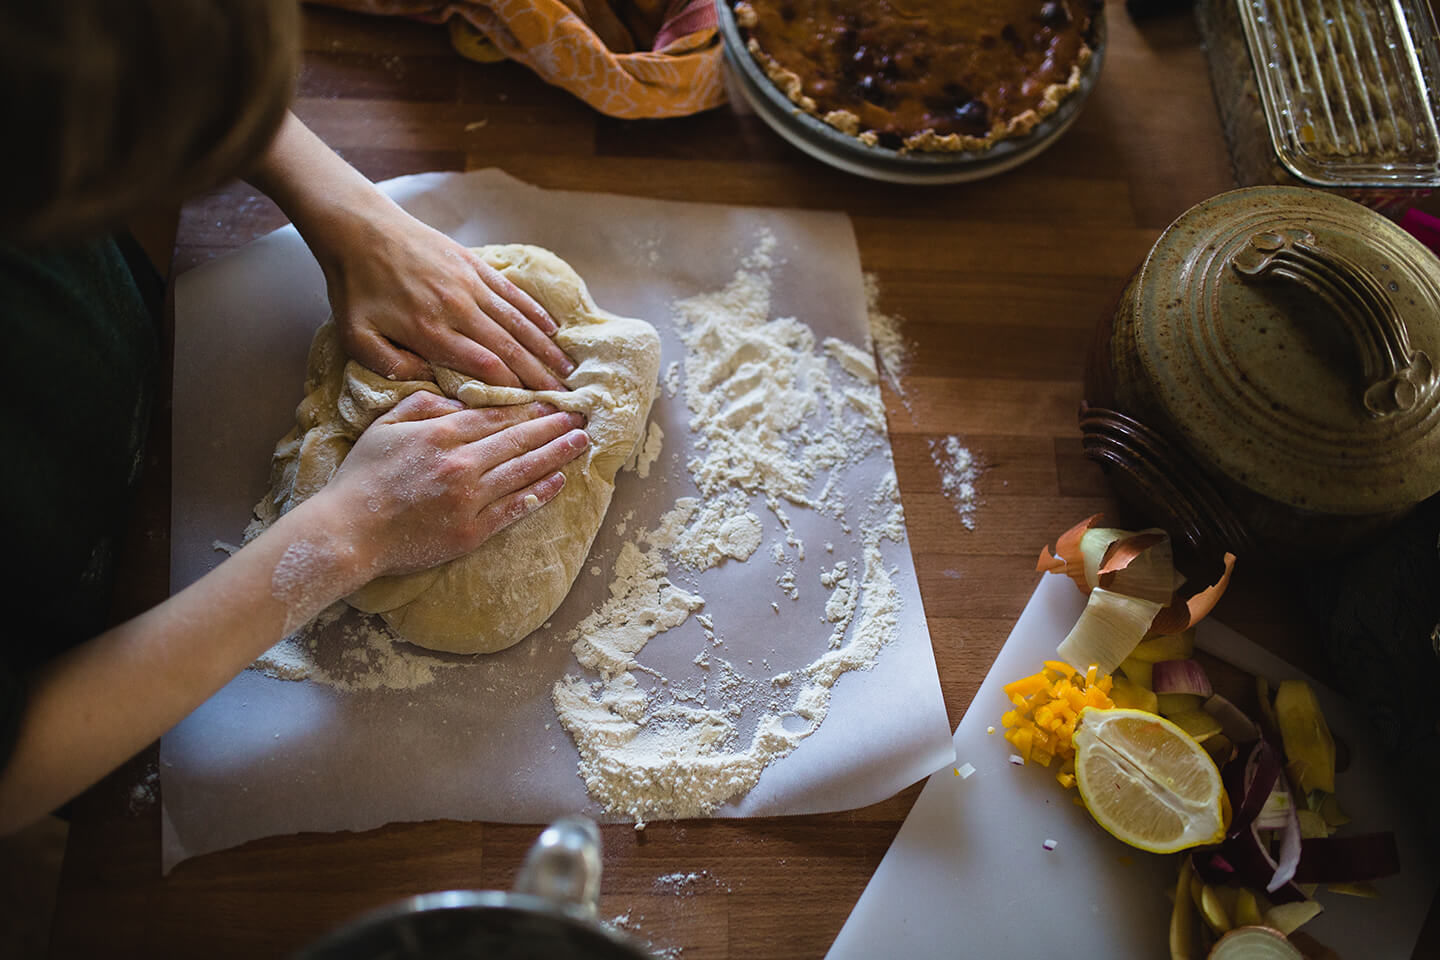 A person gently working dough with flour on parchment paper.